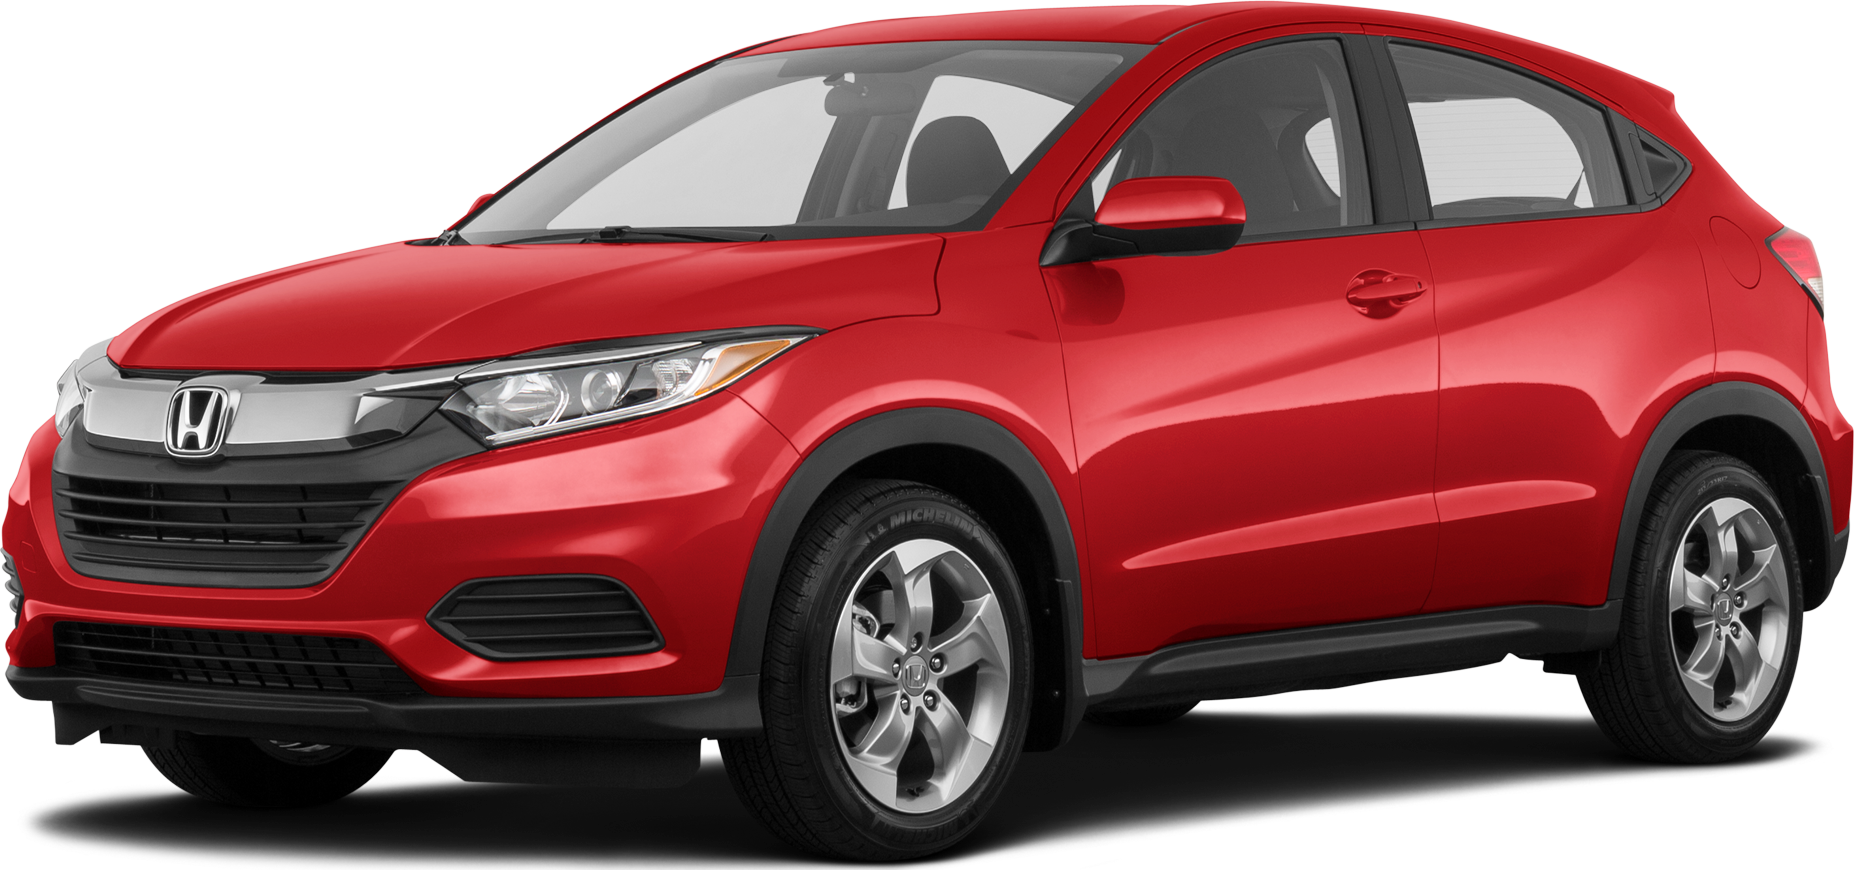 NEW 2019 HR-V LX FWD CVT